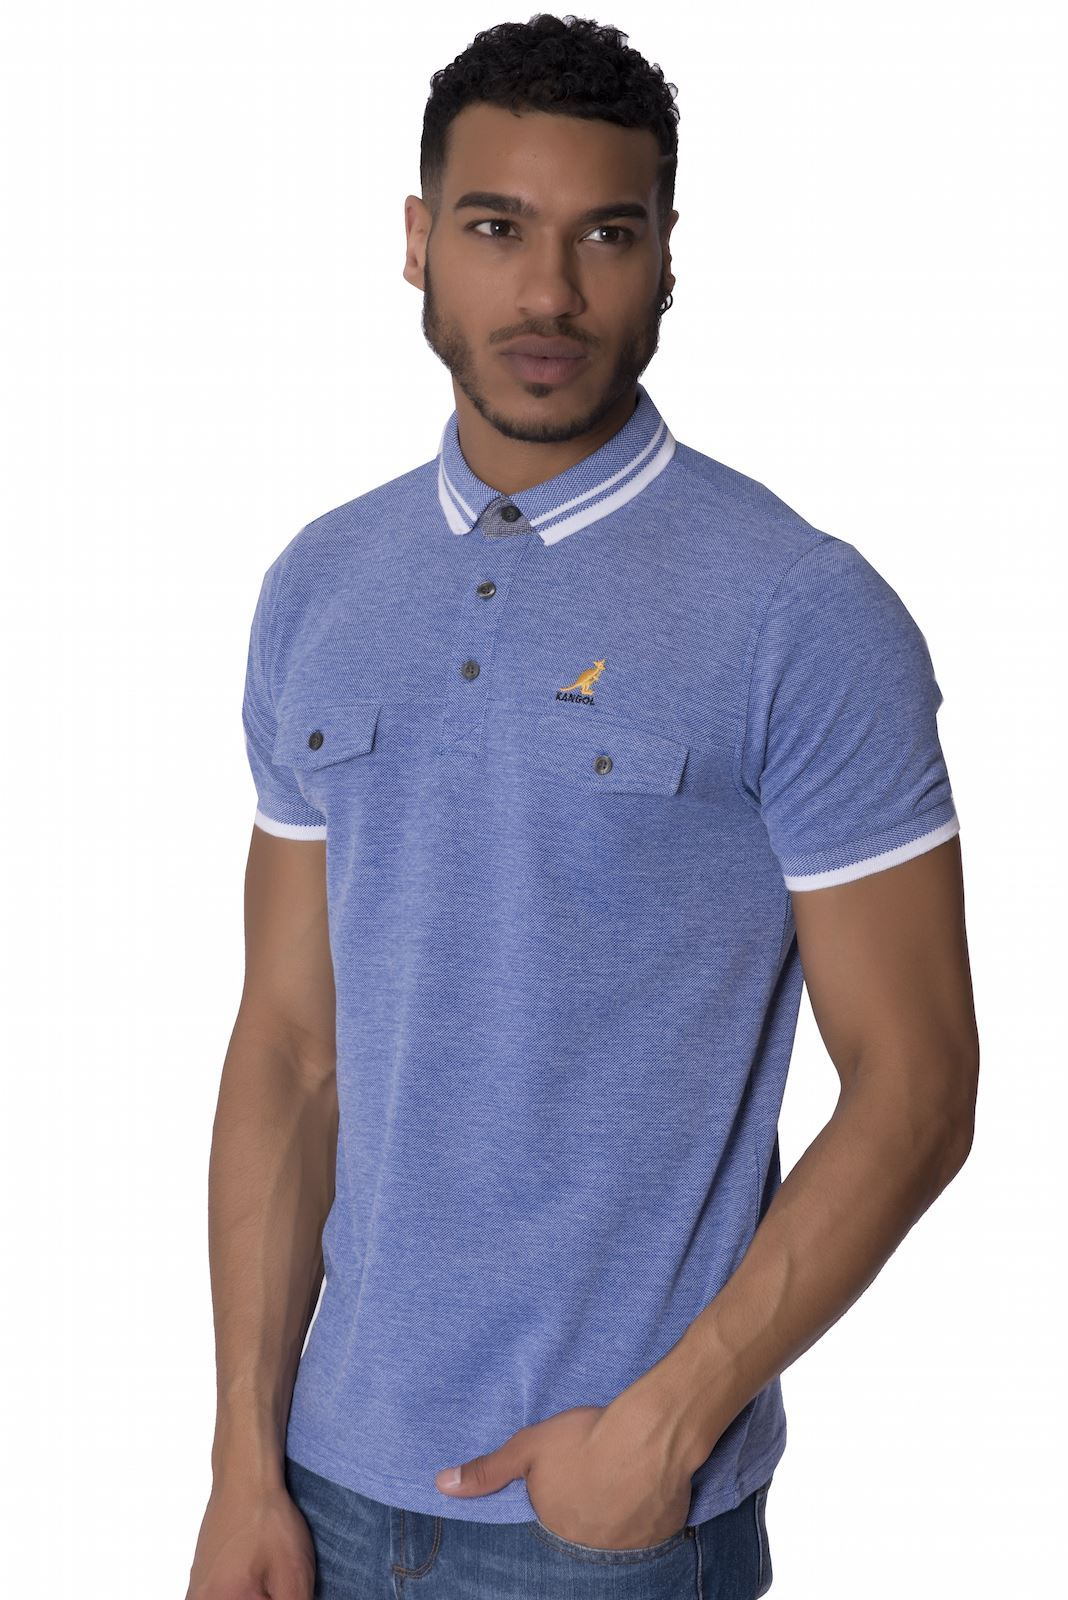 Kangol mens branded polo shirt chest pocket button up for Men s polo shirts with chest pocket